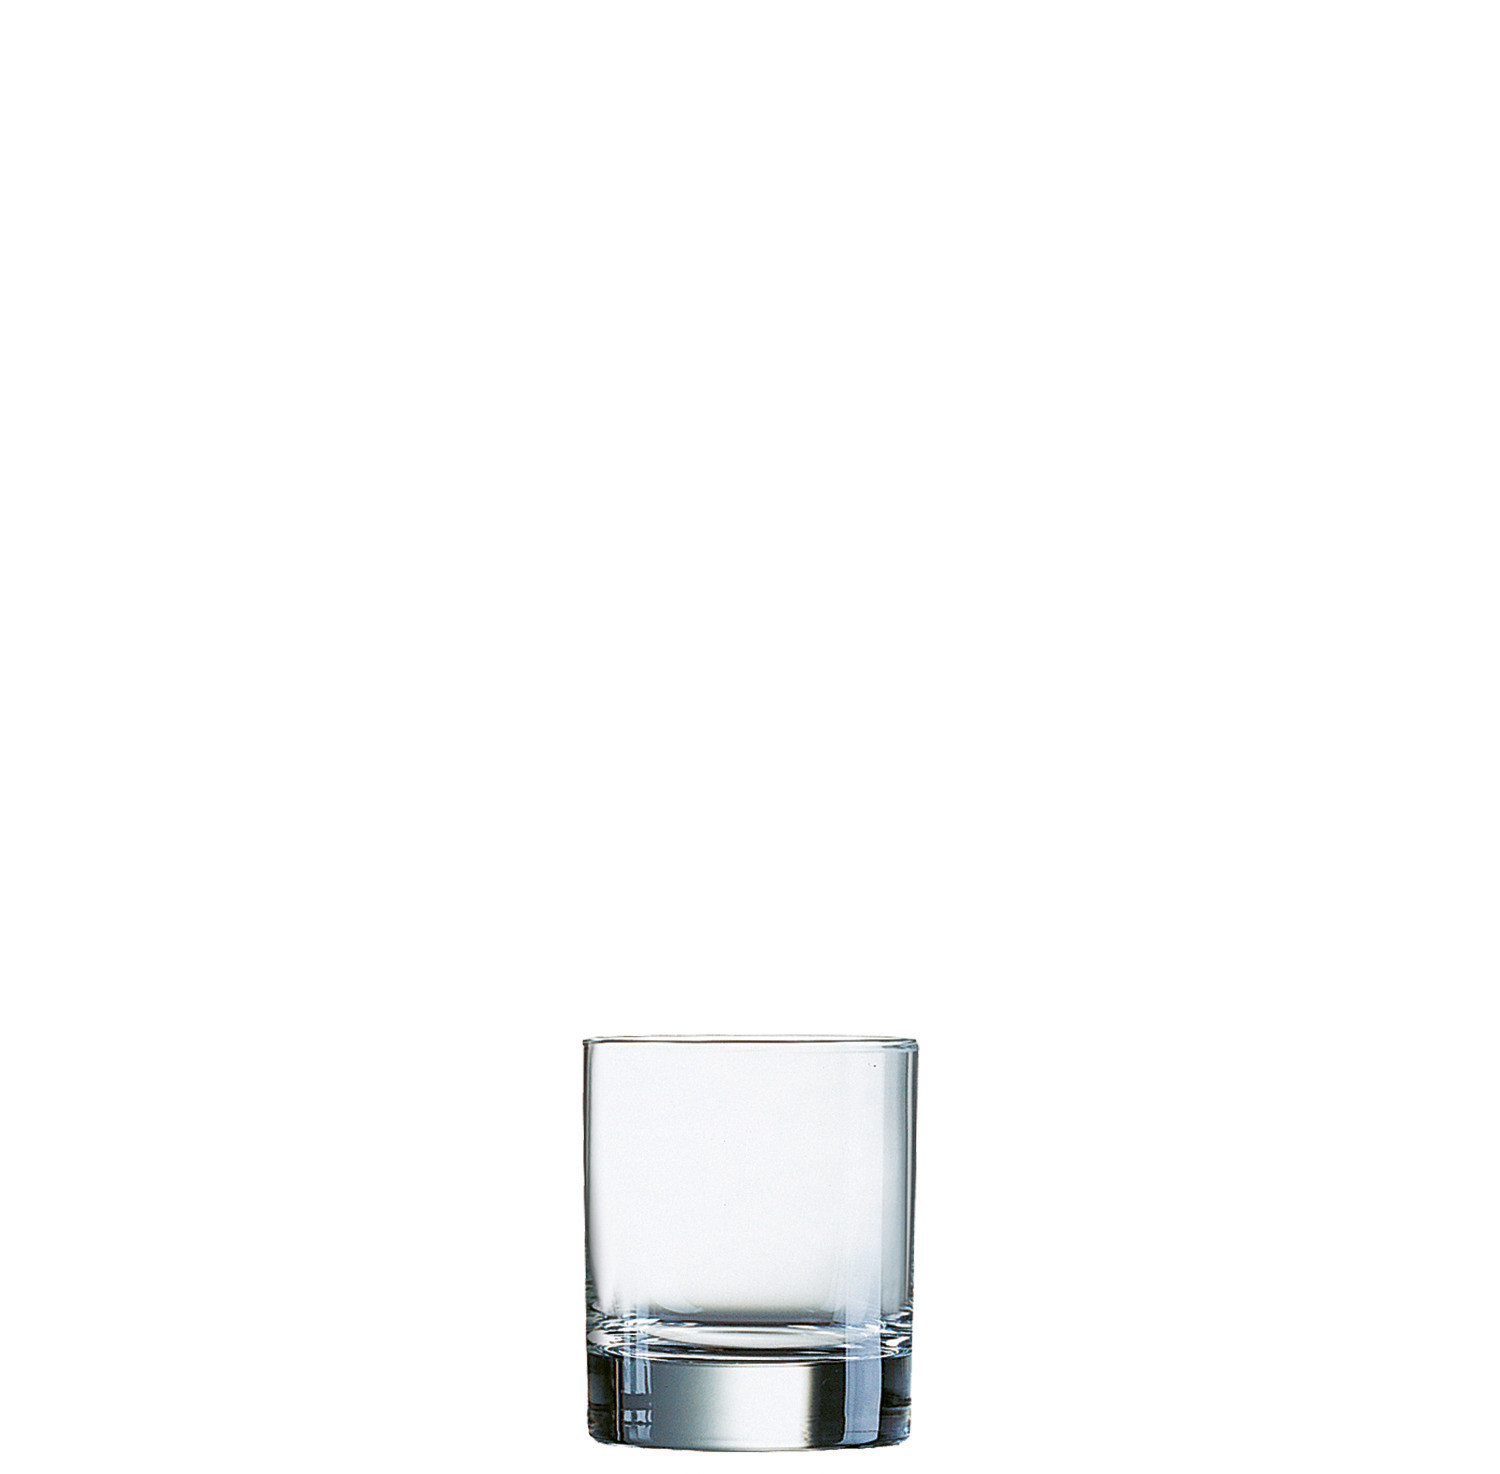 Islande, Whiskyglas ø 70 mm / 0,20 l